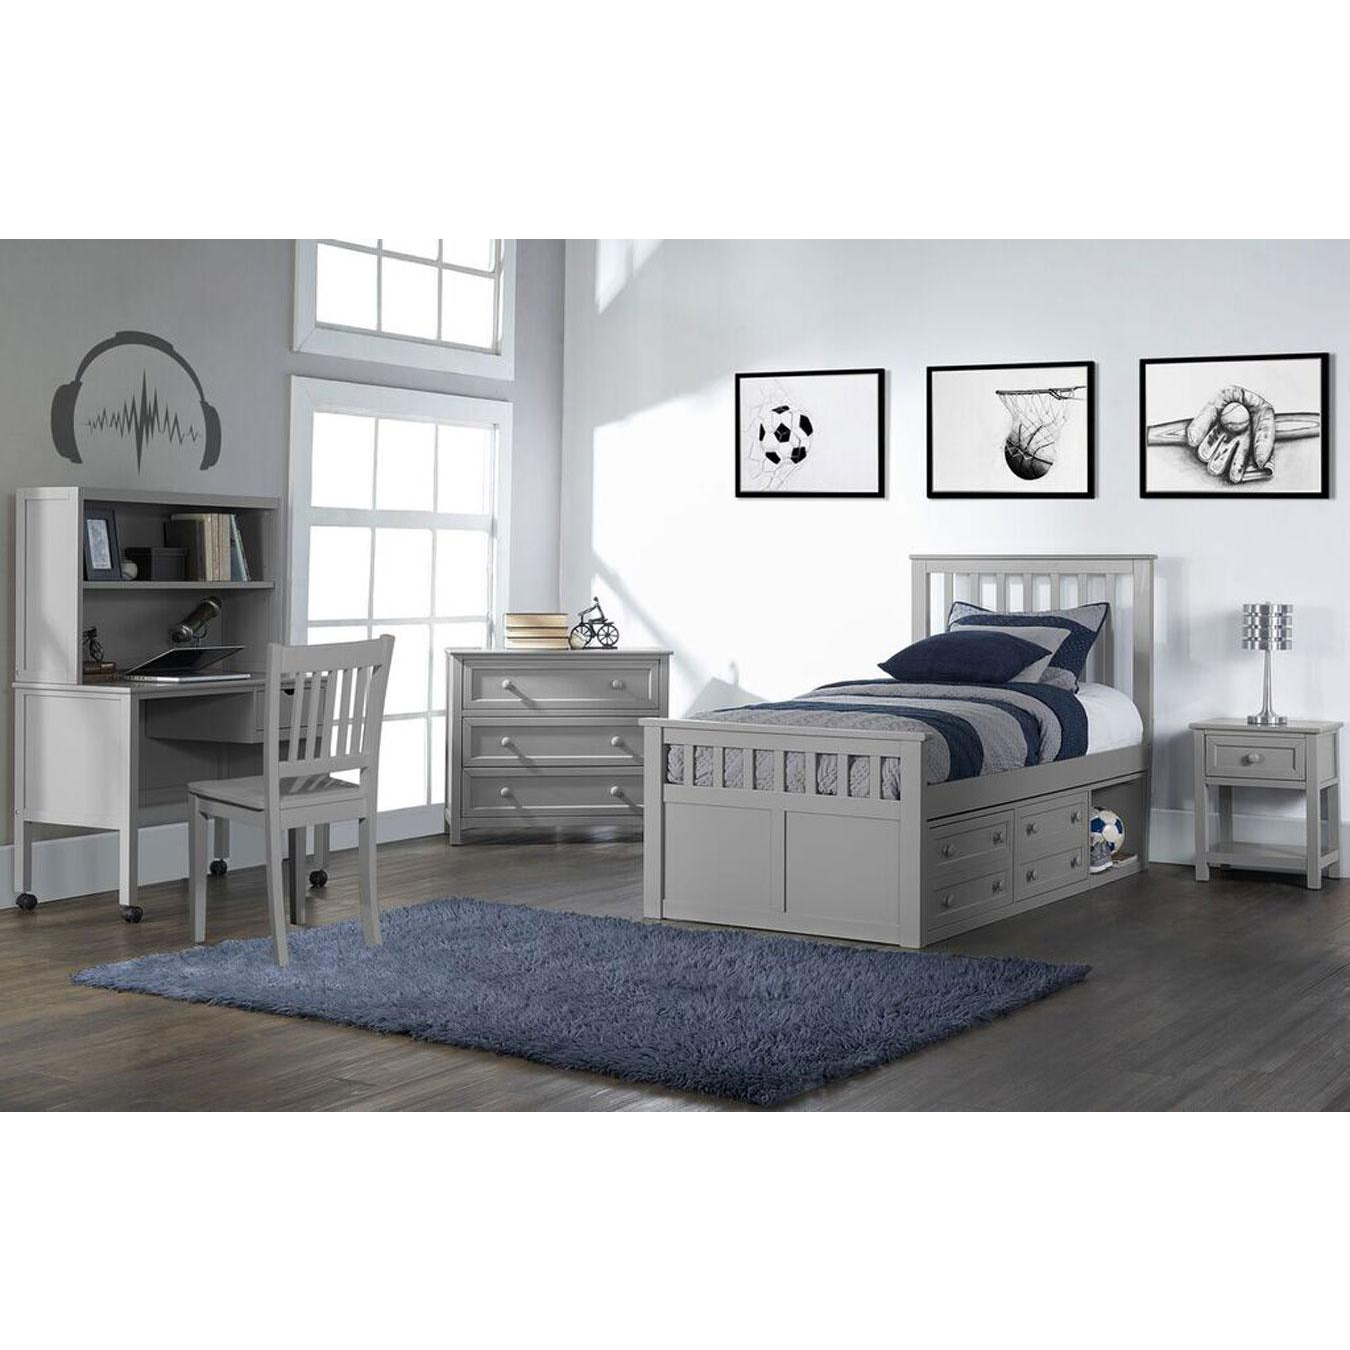 Marley Gray Captains Bed